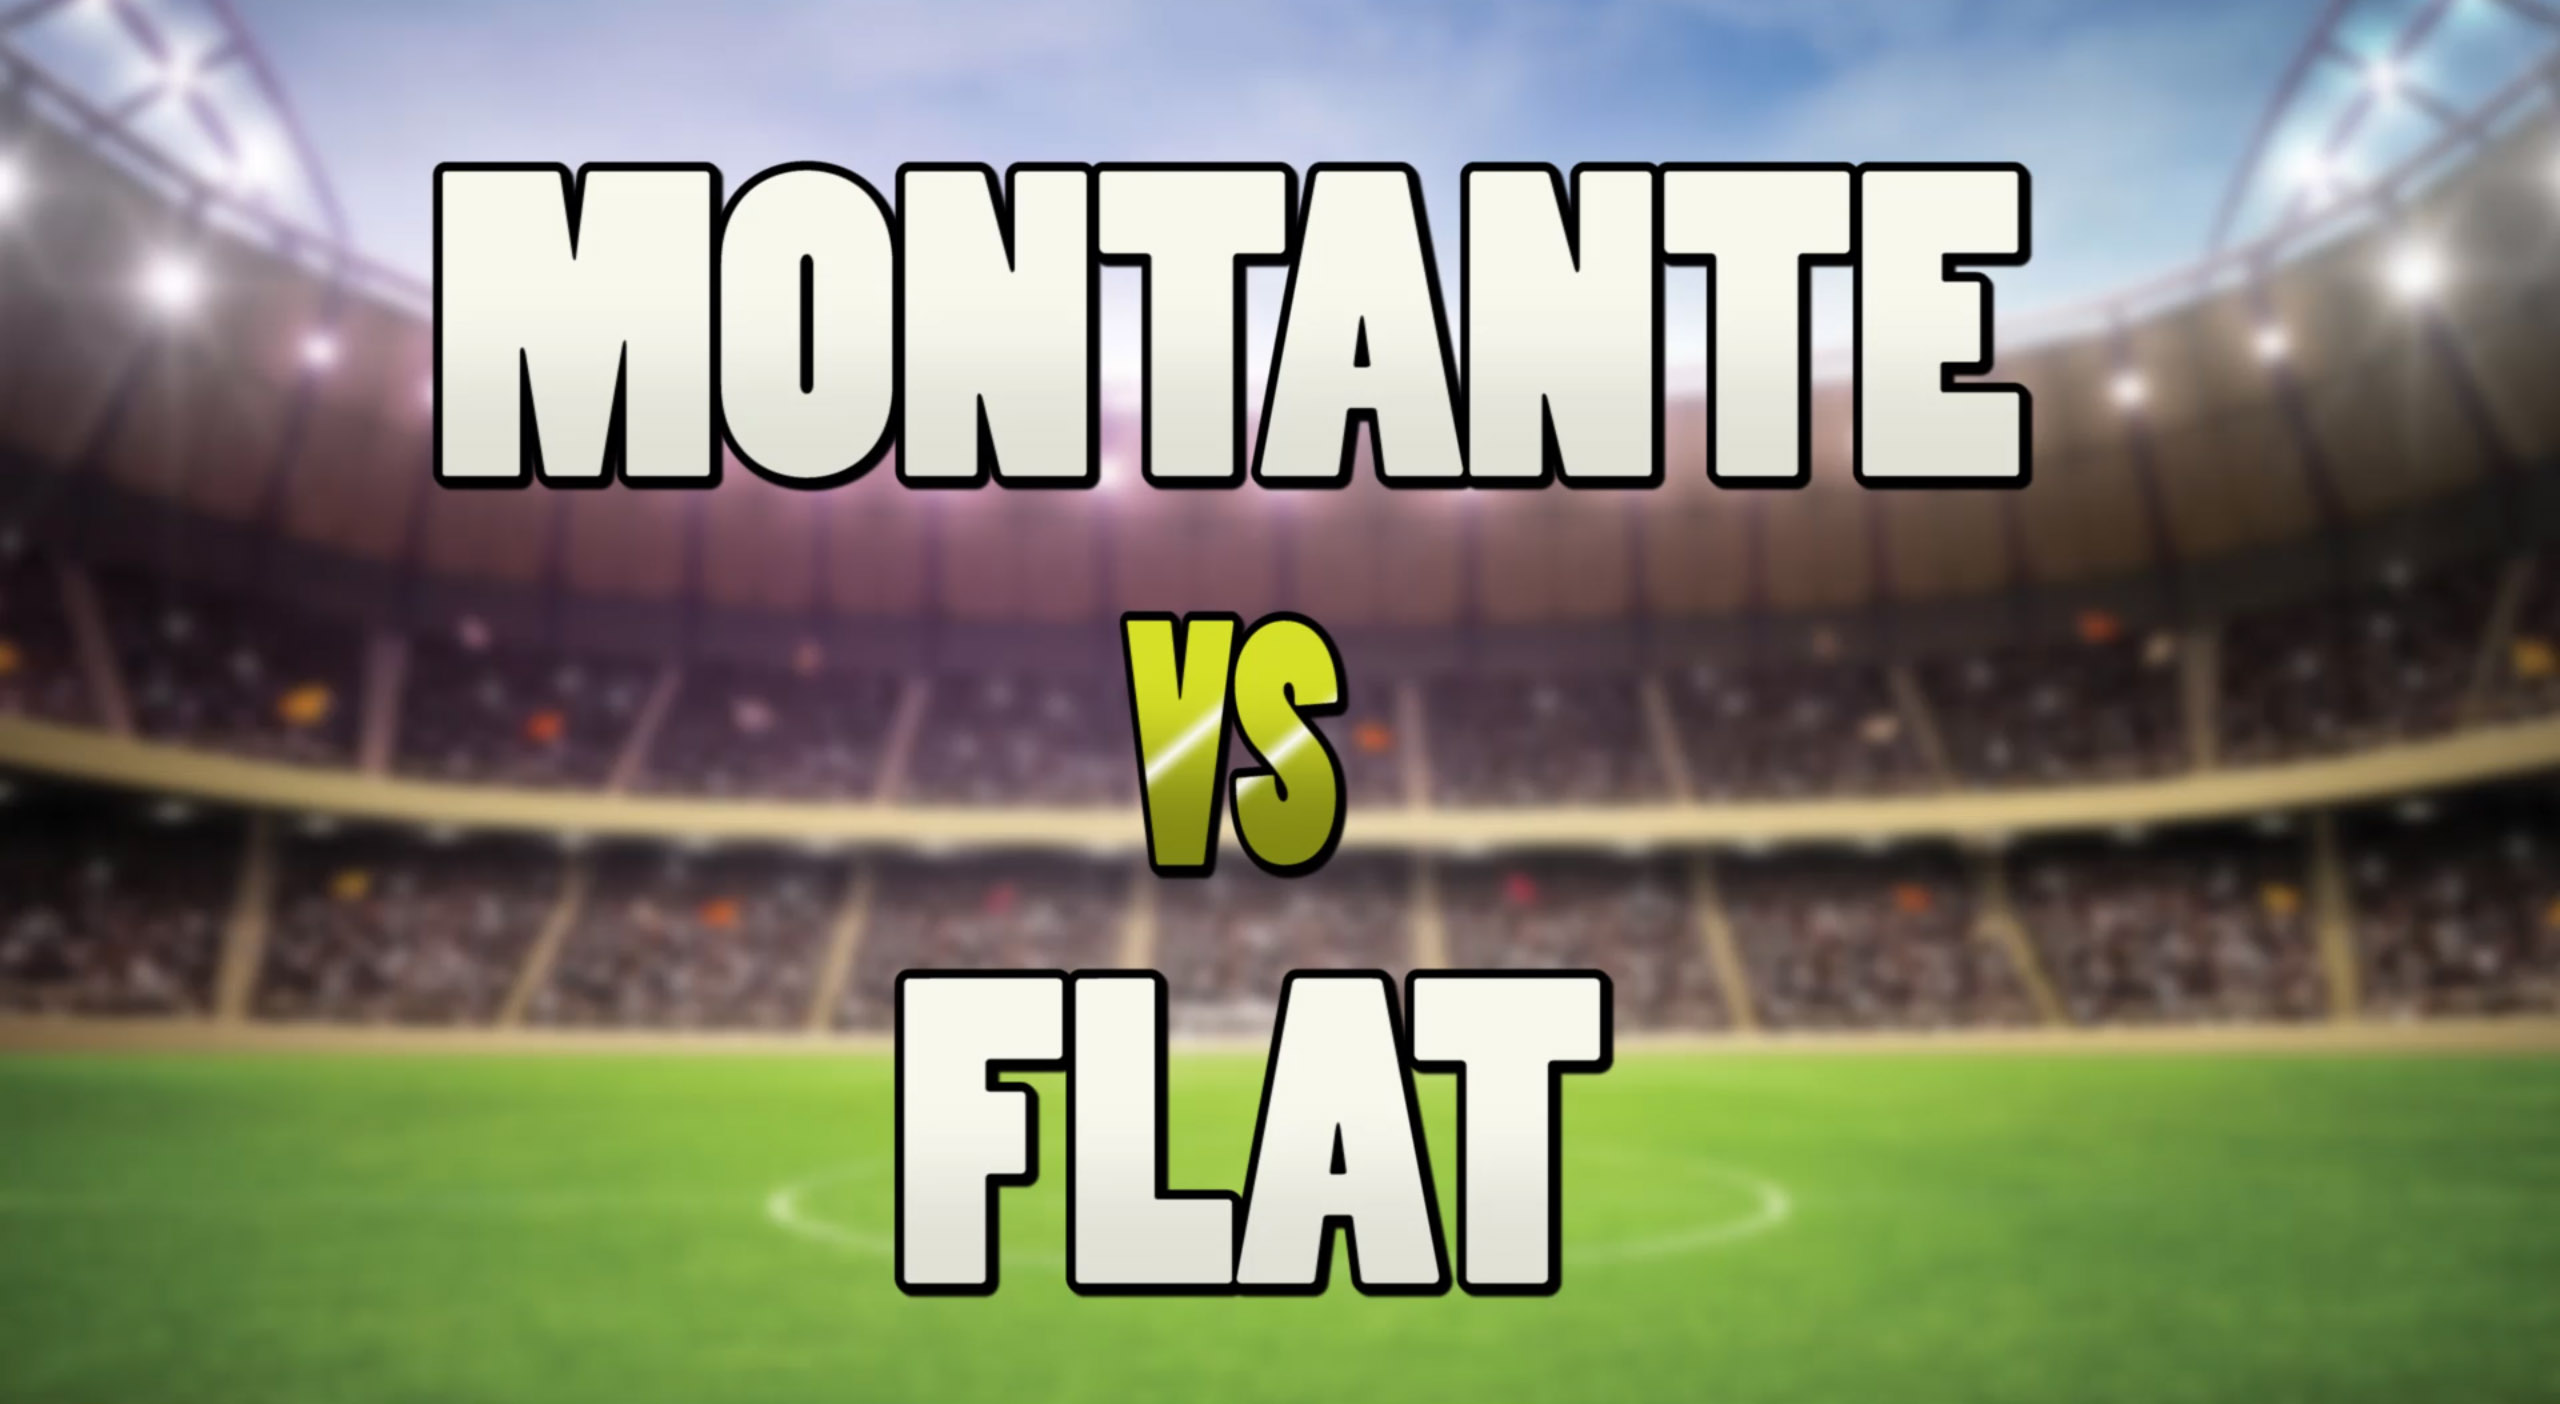 [VIDEO] Notre bilan flat betting VS montante